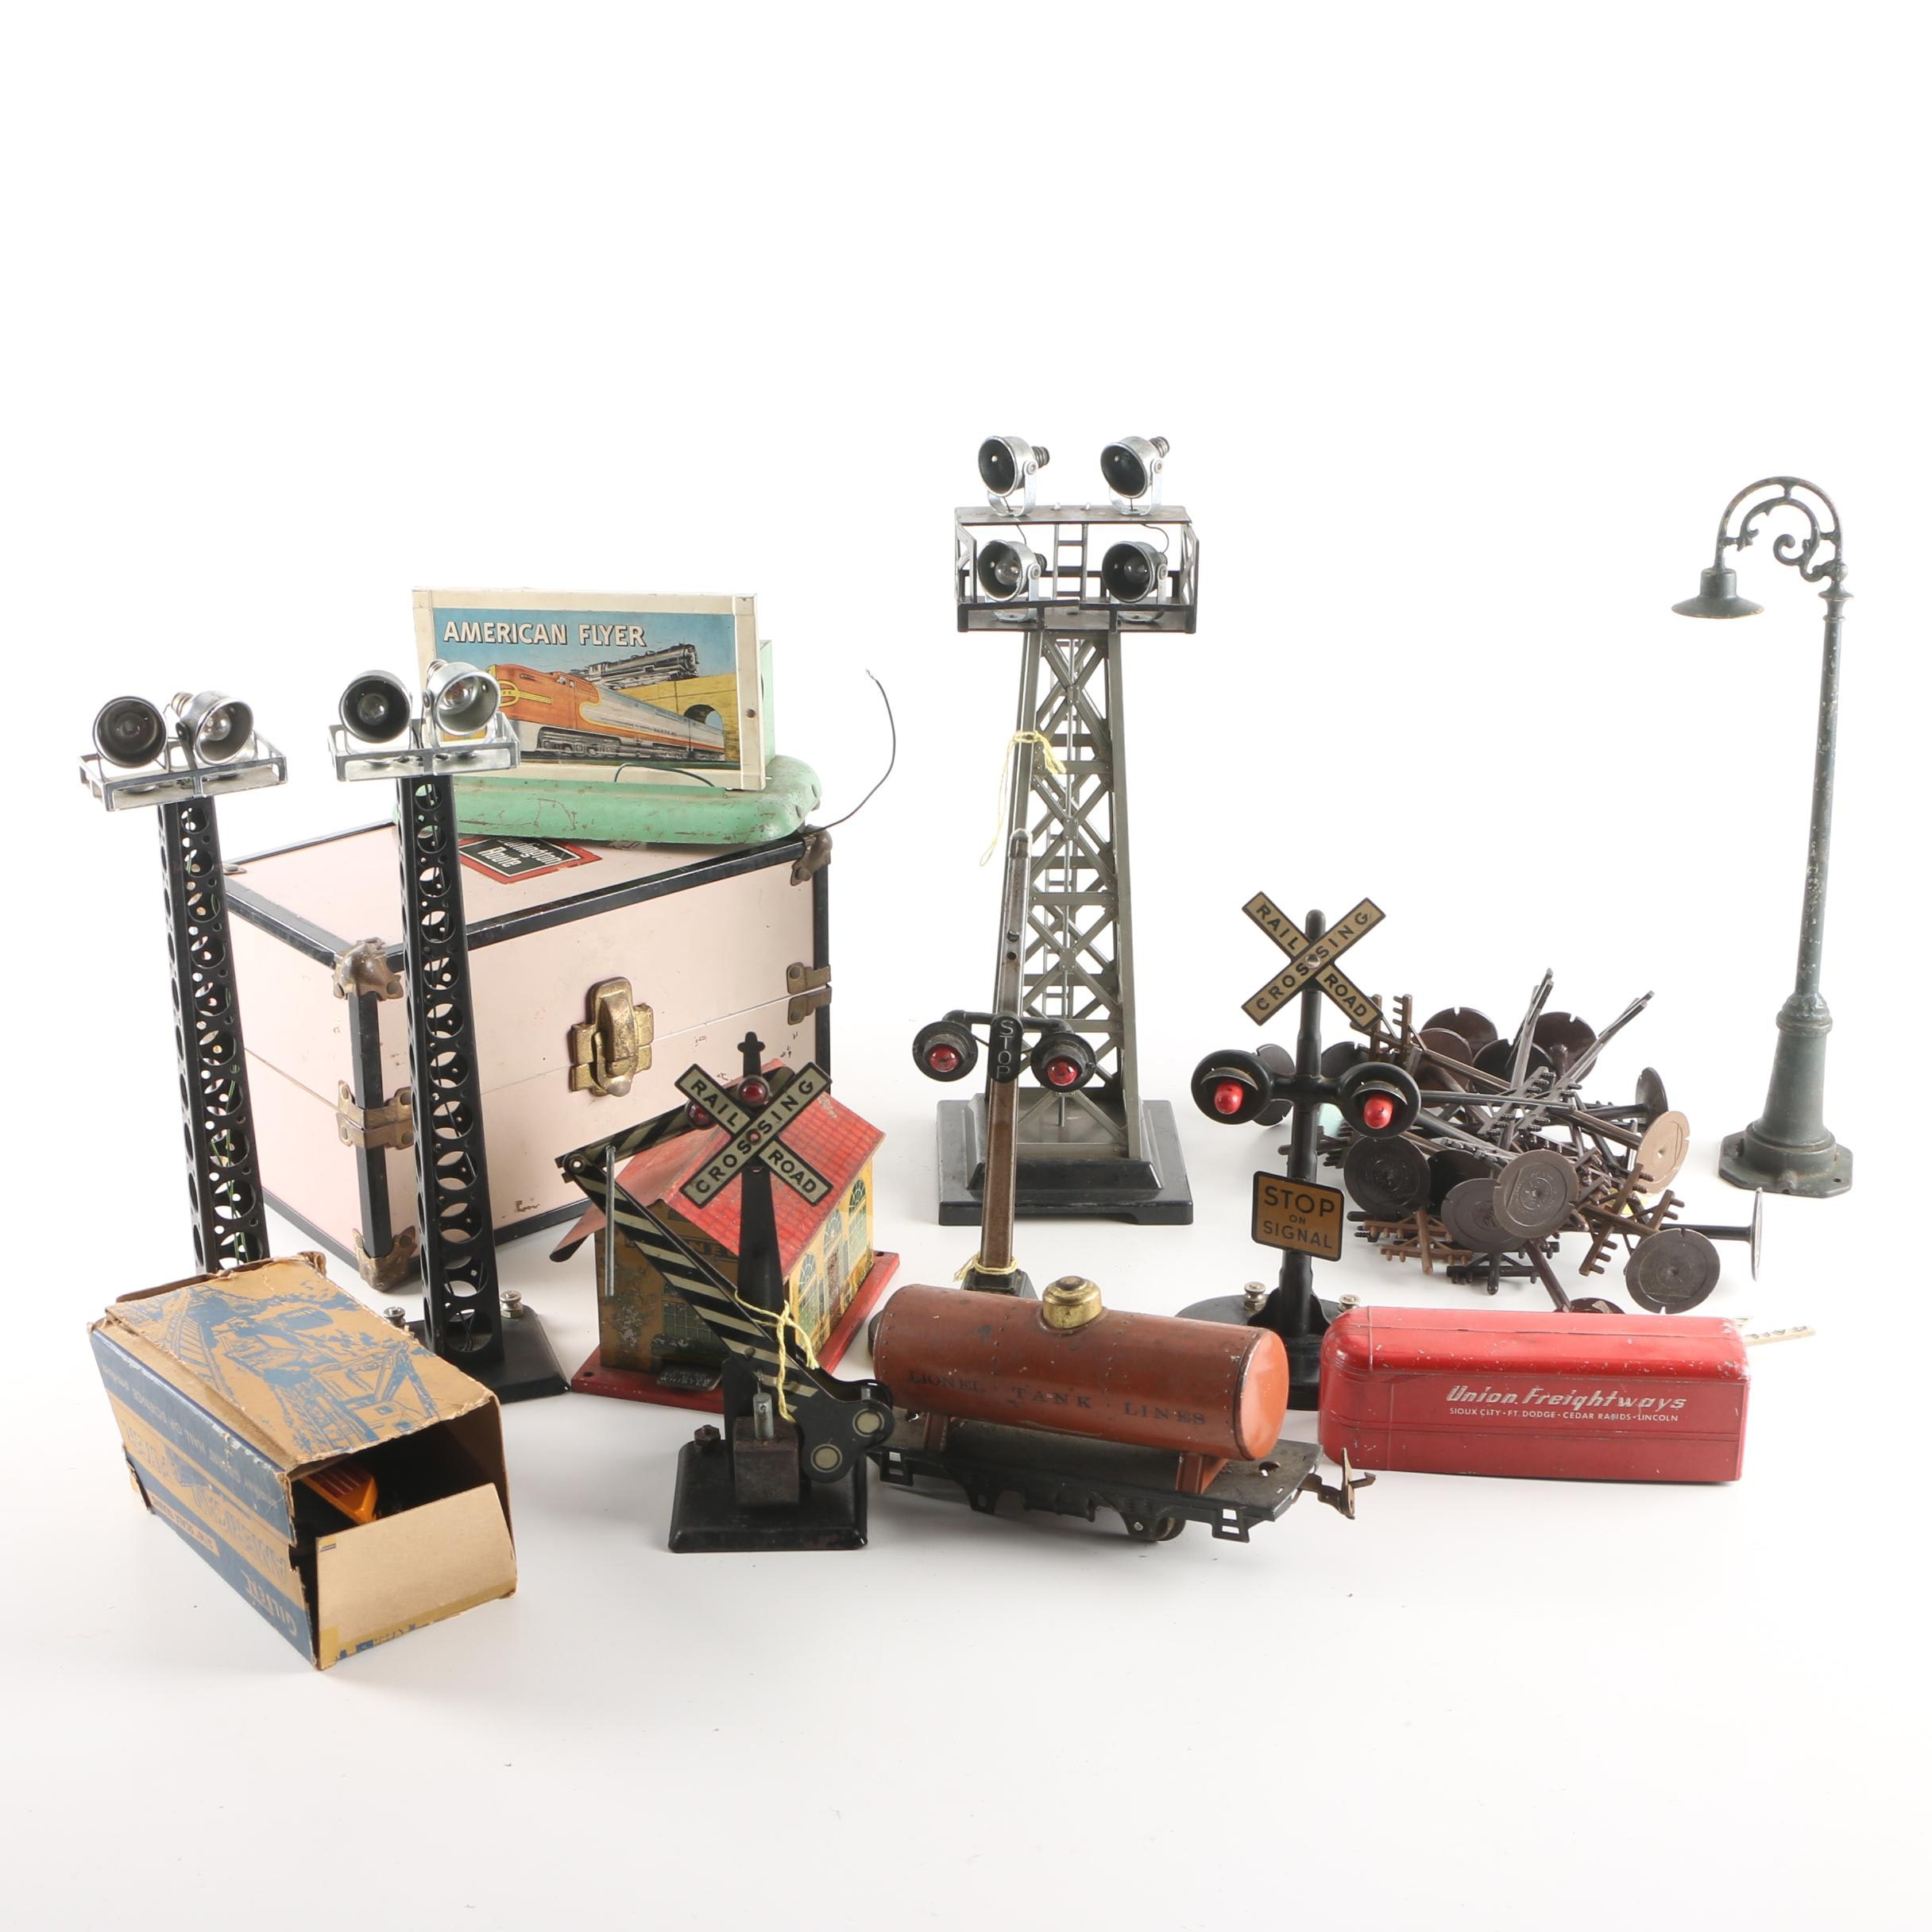 Vintage Electric Train Set Accessories, Including Lionel and American Flyer